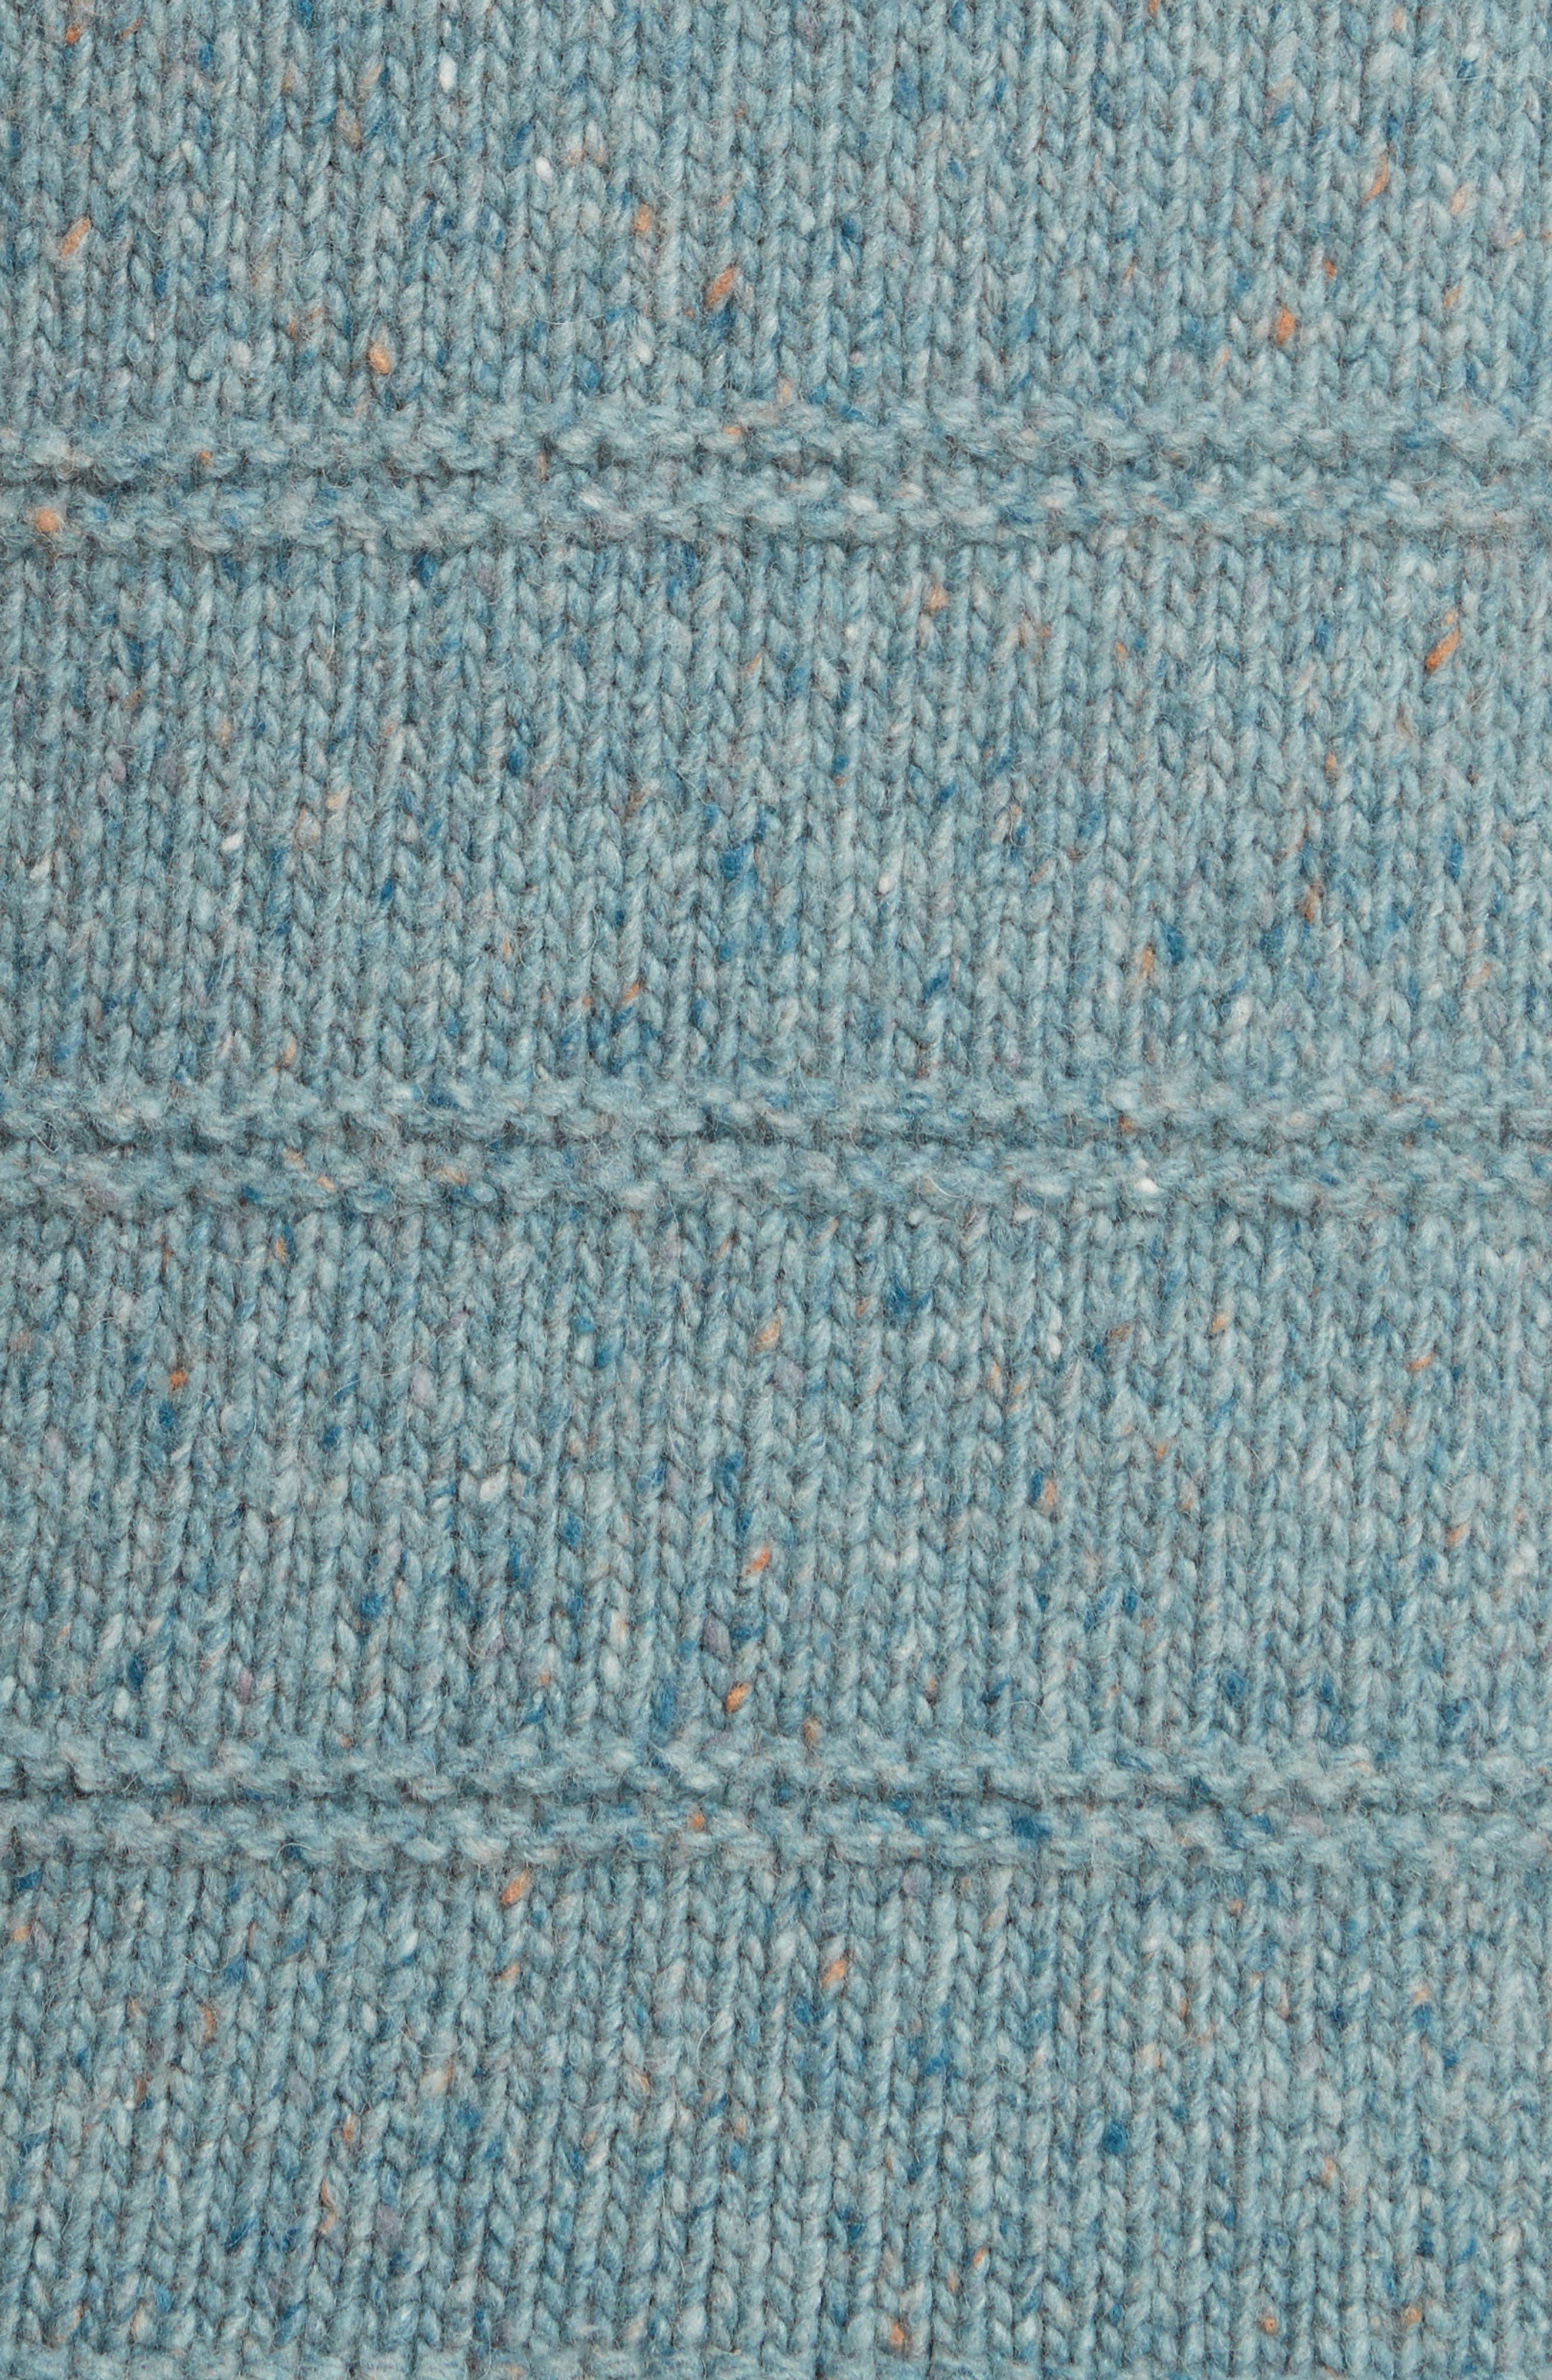 Donegal Tweed Pullover,                             Alternate thumbnail 5, color,                             Sea Mist